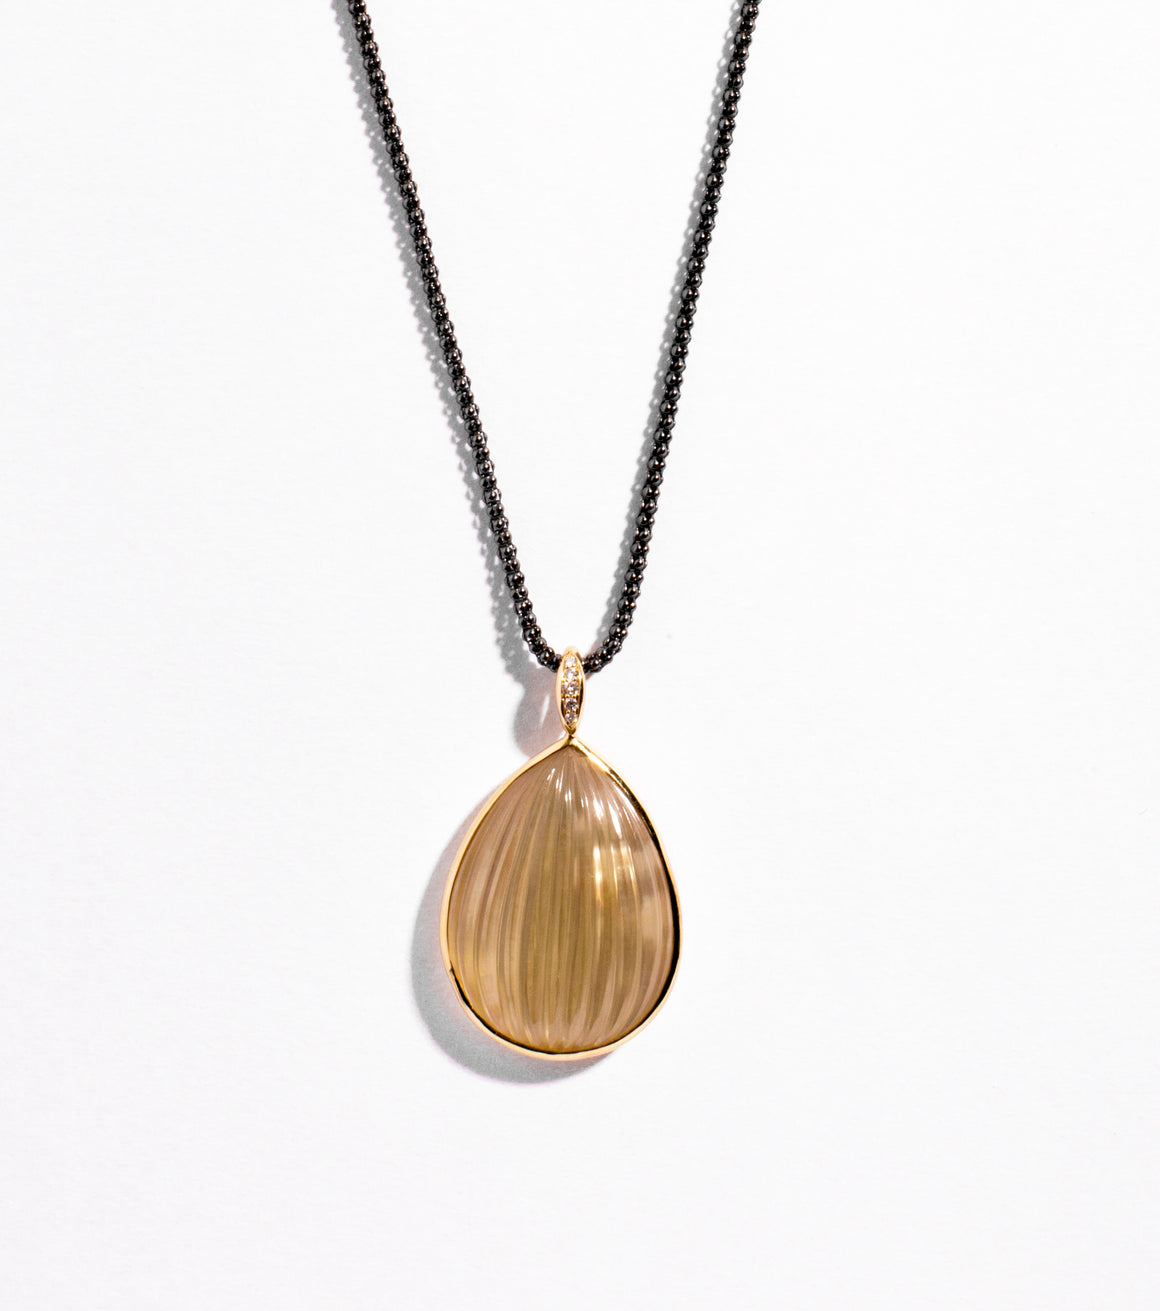 Soleil Necklace in Lemon Quartz over Mother of Pearl in 18kt Yellow Gold